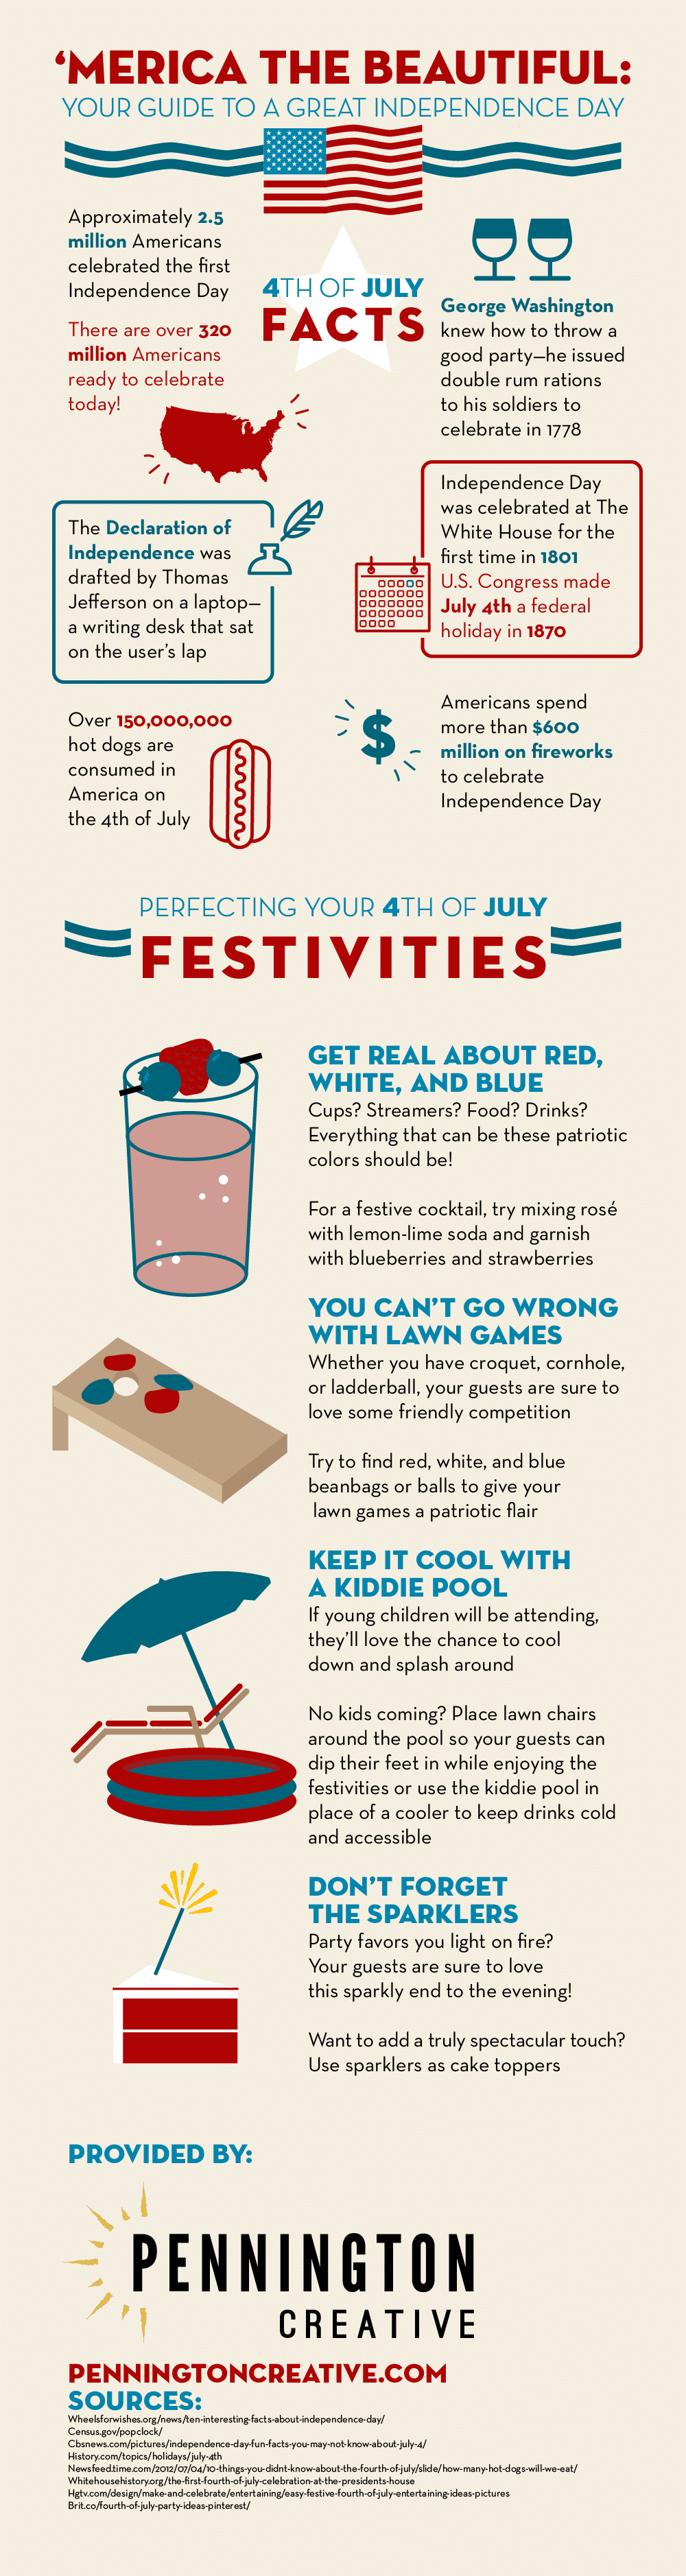 Infographic featuring July 4th facts and party tips.